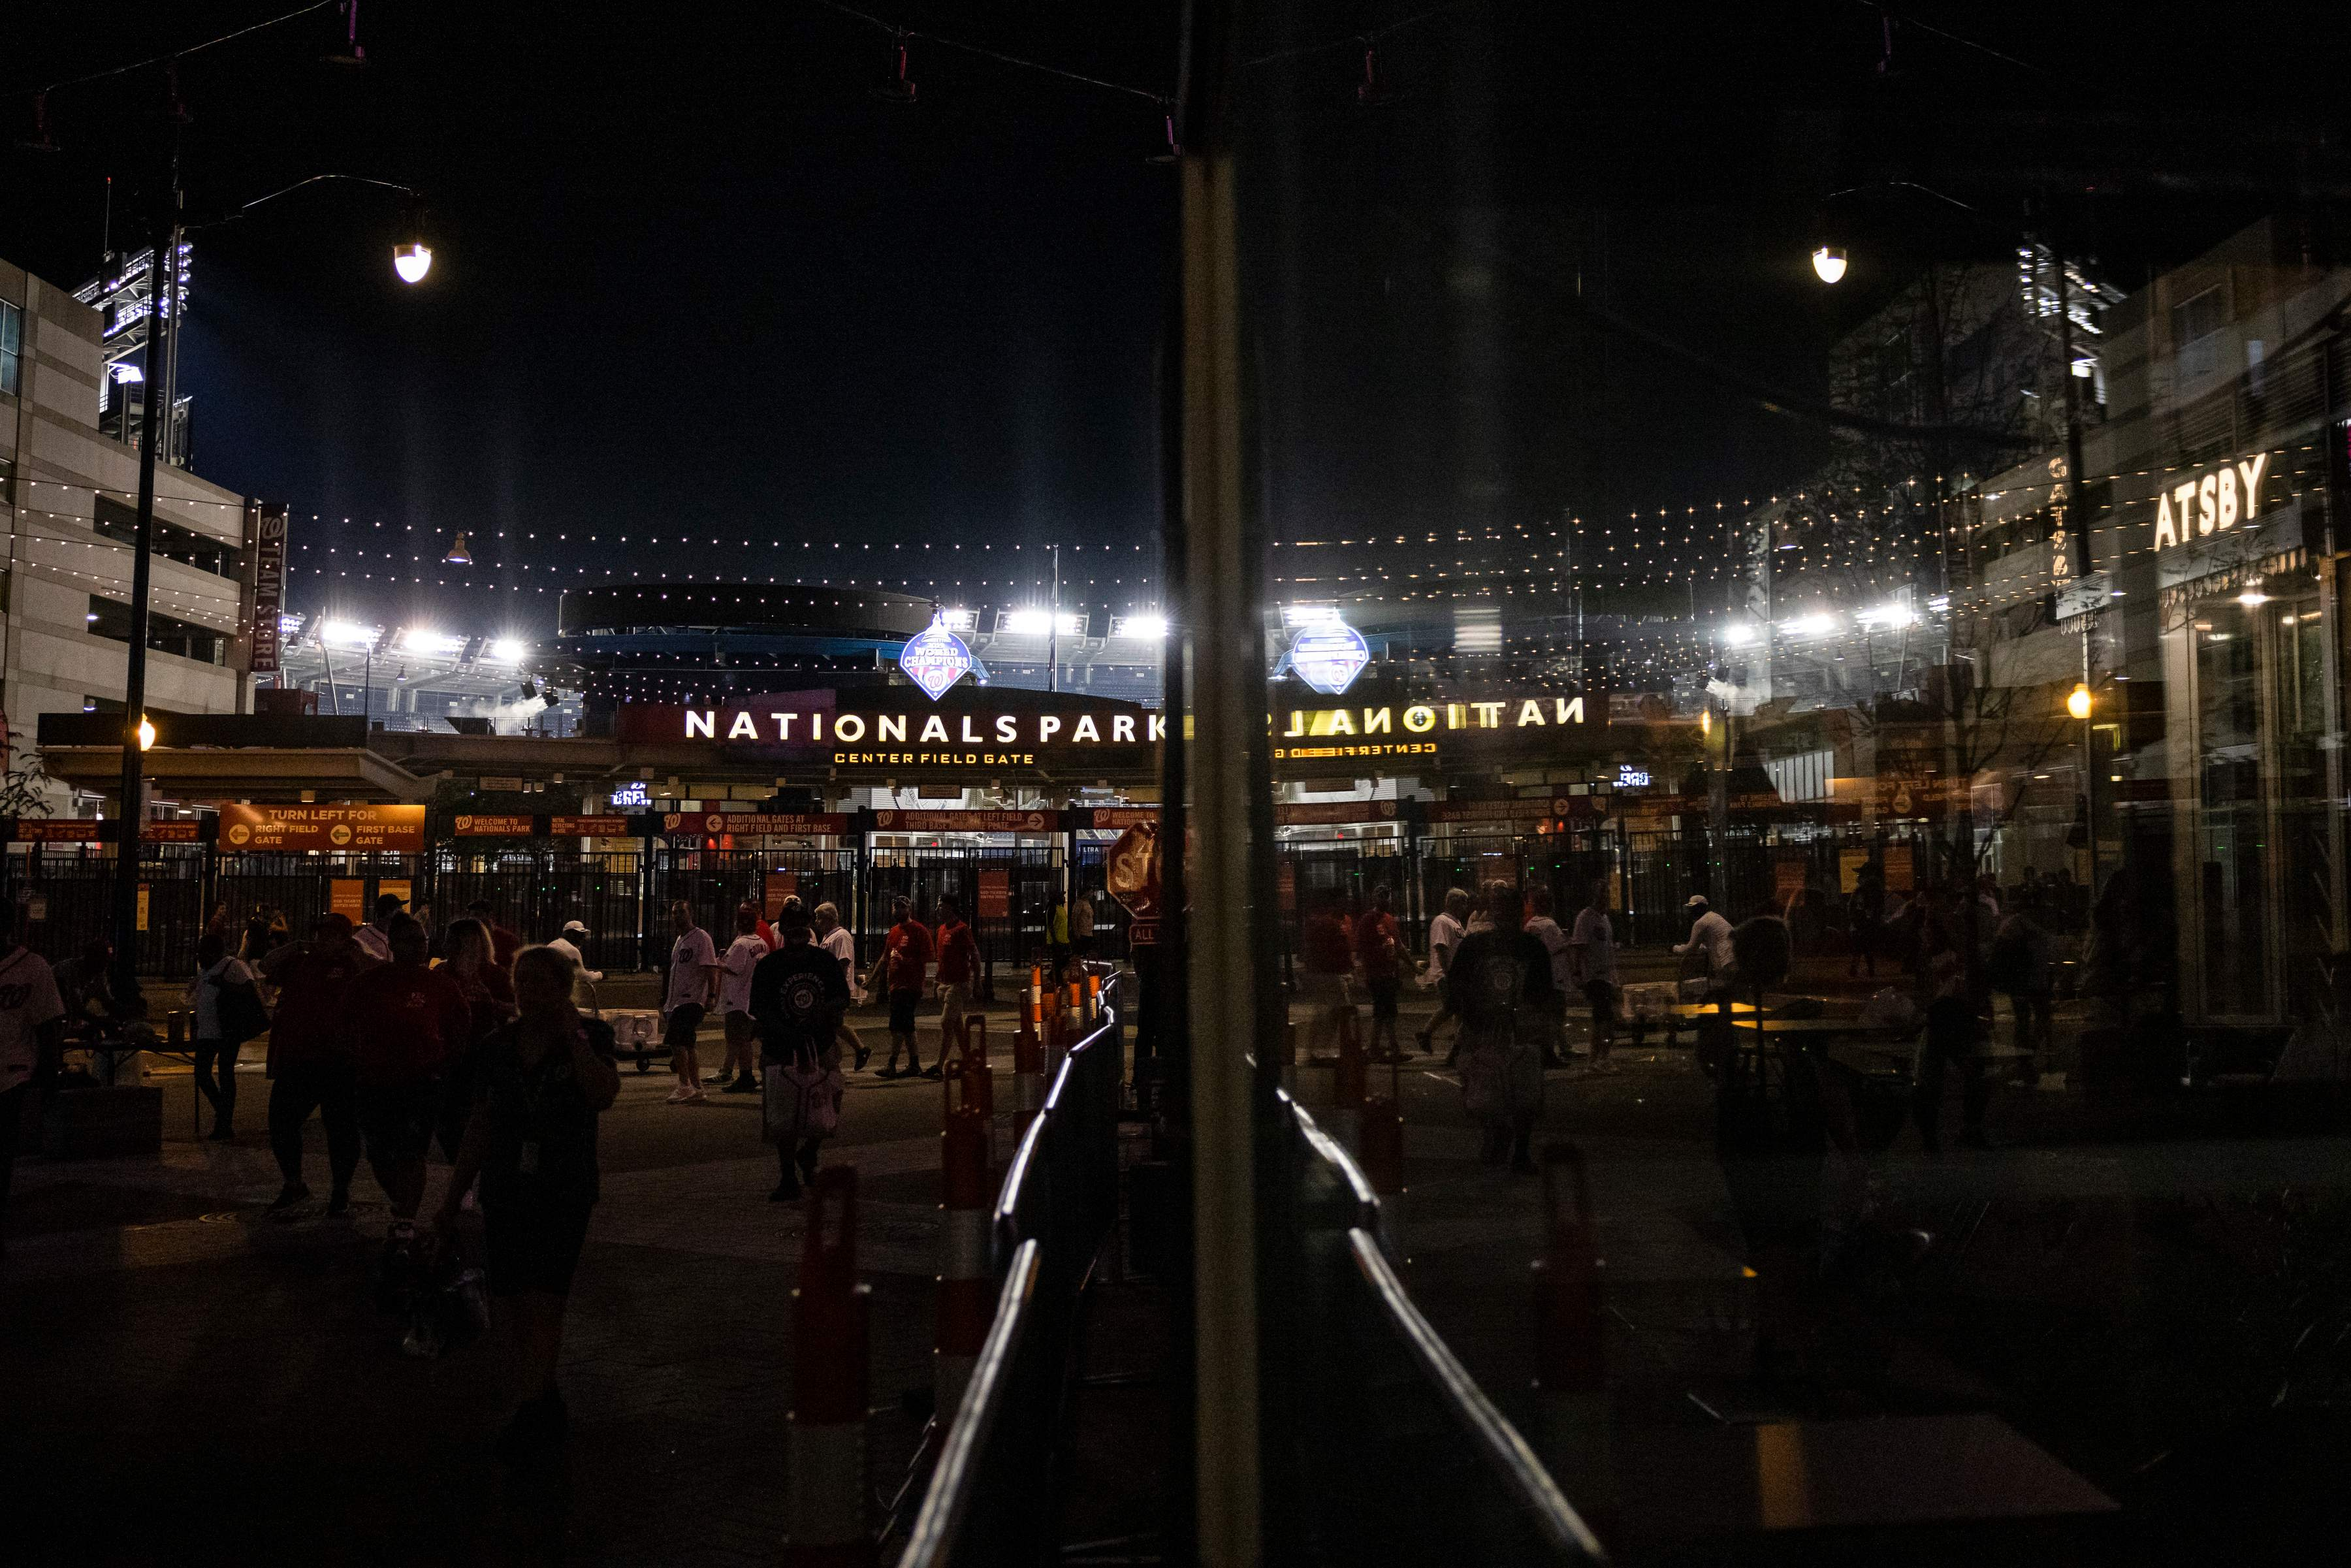 Fans leave Nationals Park after a shootout outside the Third Base Gate during the game on July 17, 2021 in Washington, DC.